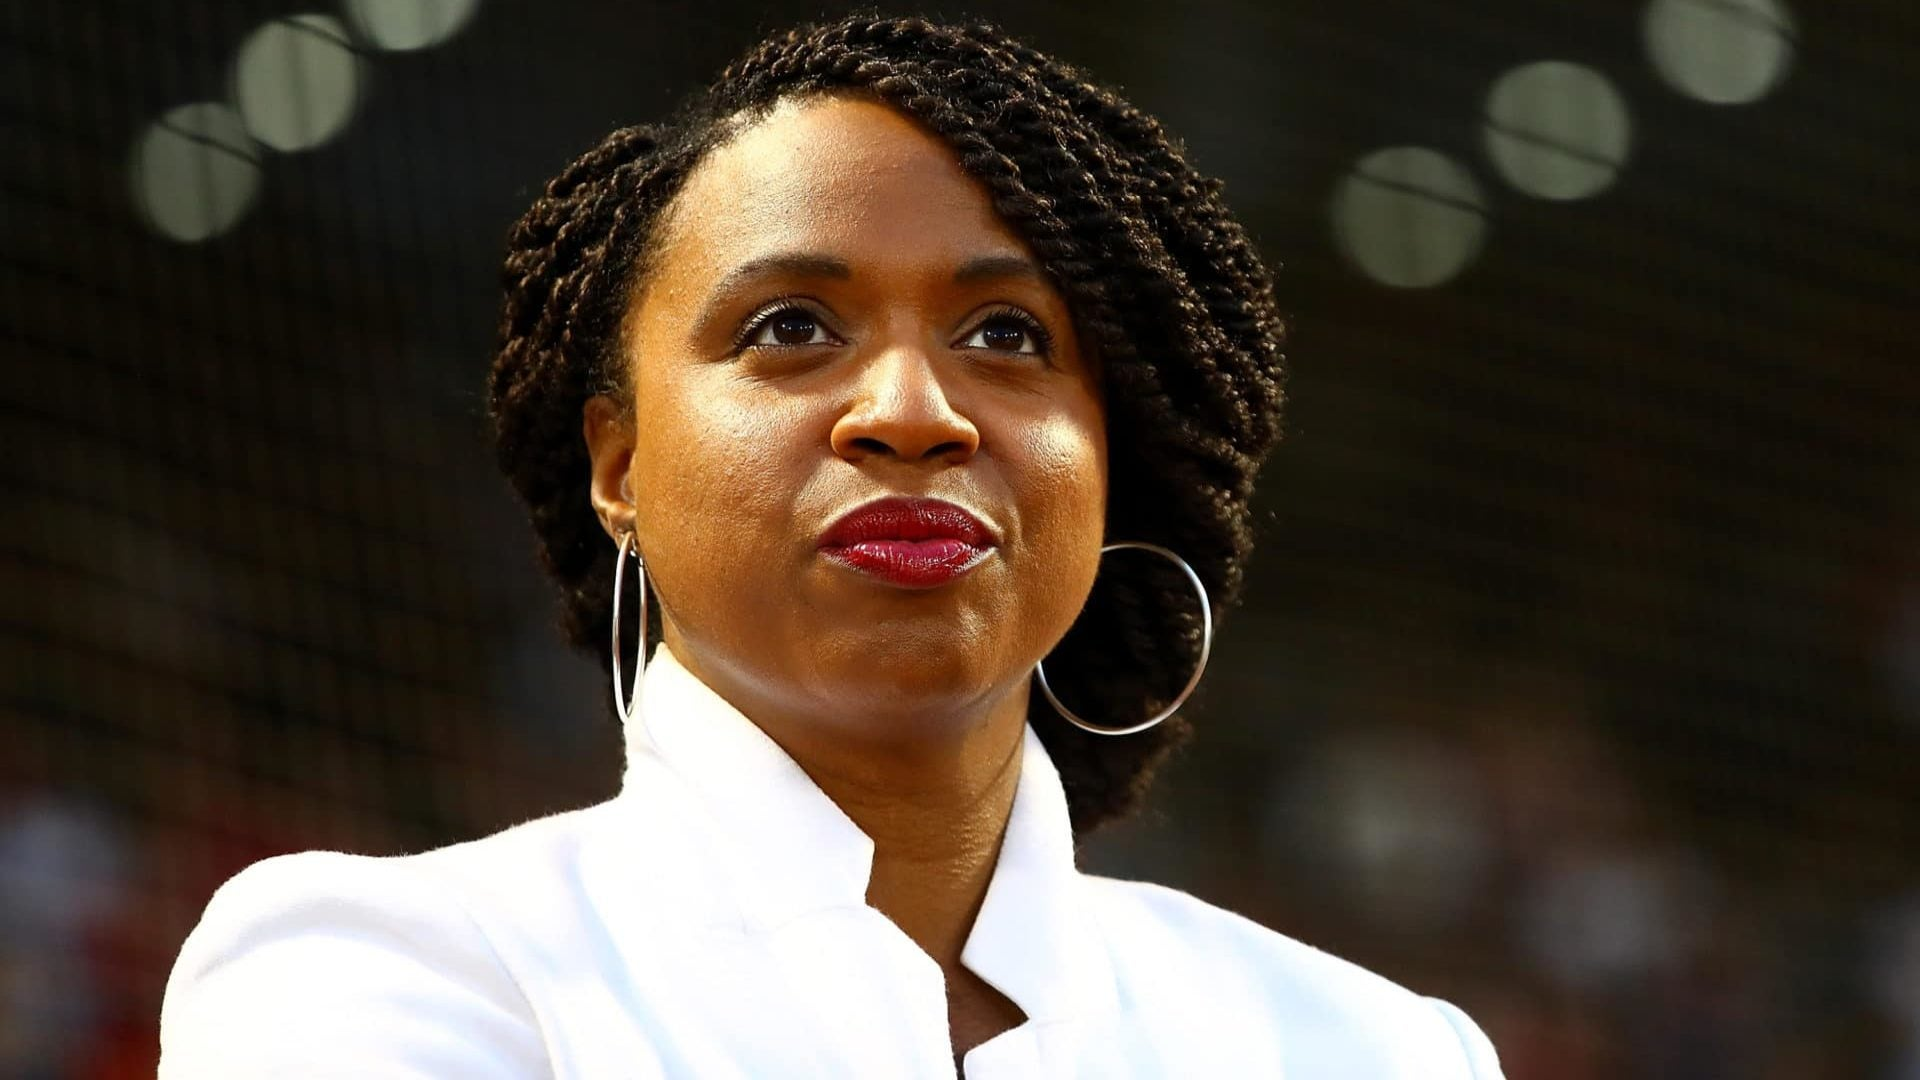 Pressley Tackles 'School-To-Confinement Pathway' With New Bill